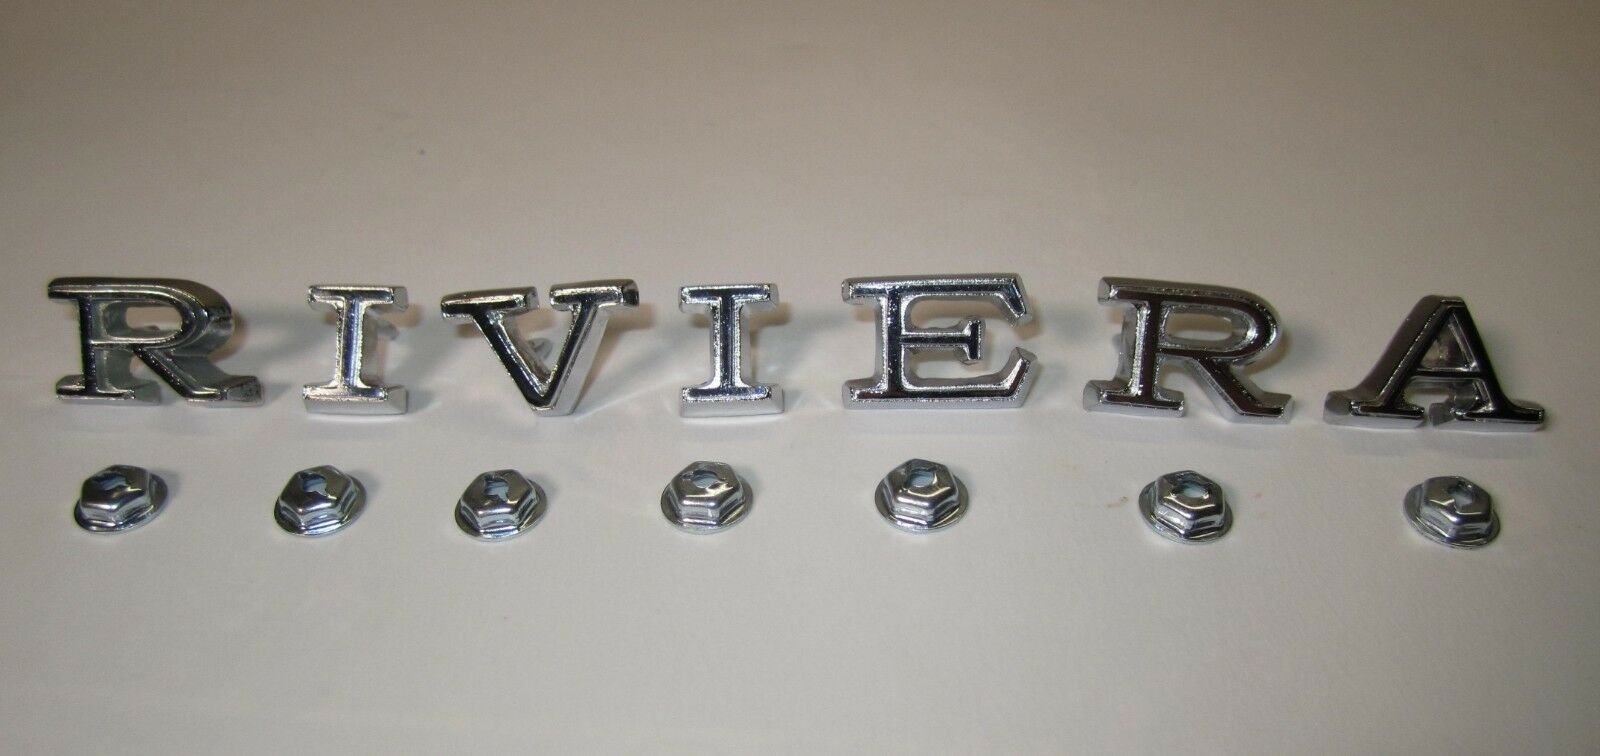 Fender Letters 1968-69 Buick Riviera